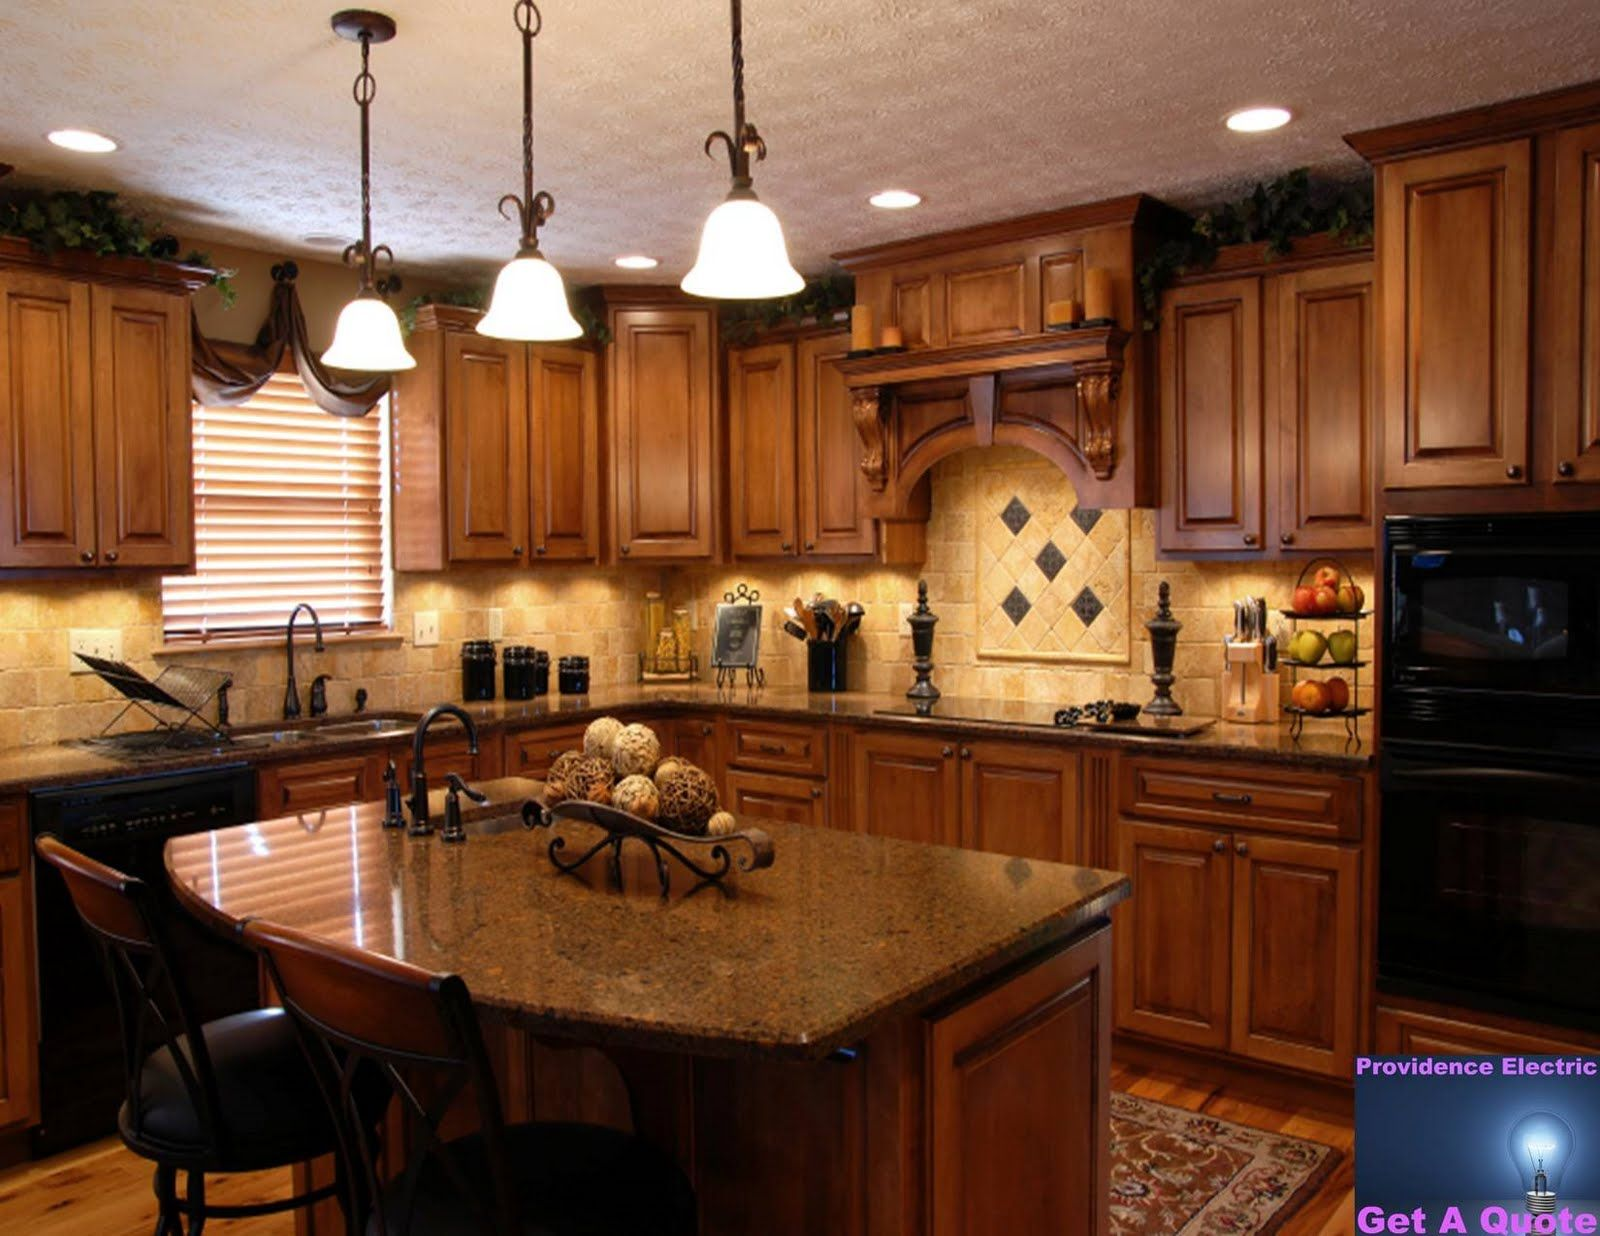 Kitchen Remodeling On A Budget | DESIGN NOTES: Kitchen makeover on on kitchen cabinets on a budget, beautiful kitchens on a budget, wall decor ideas on a budget, outdoor rooms with curtains on a budget, country kitchens on a budget, farmhouse kitchens on a budget, rustic kitchens on a budget, kitchen islands on a budget, bathroom design ideas on a budget, old small kitchen budget, kitchen floor on a budget, tuscan decorating ideas budget, tuscan decor, french designs on a budget, kitchen countertops on a budget,